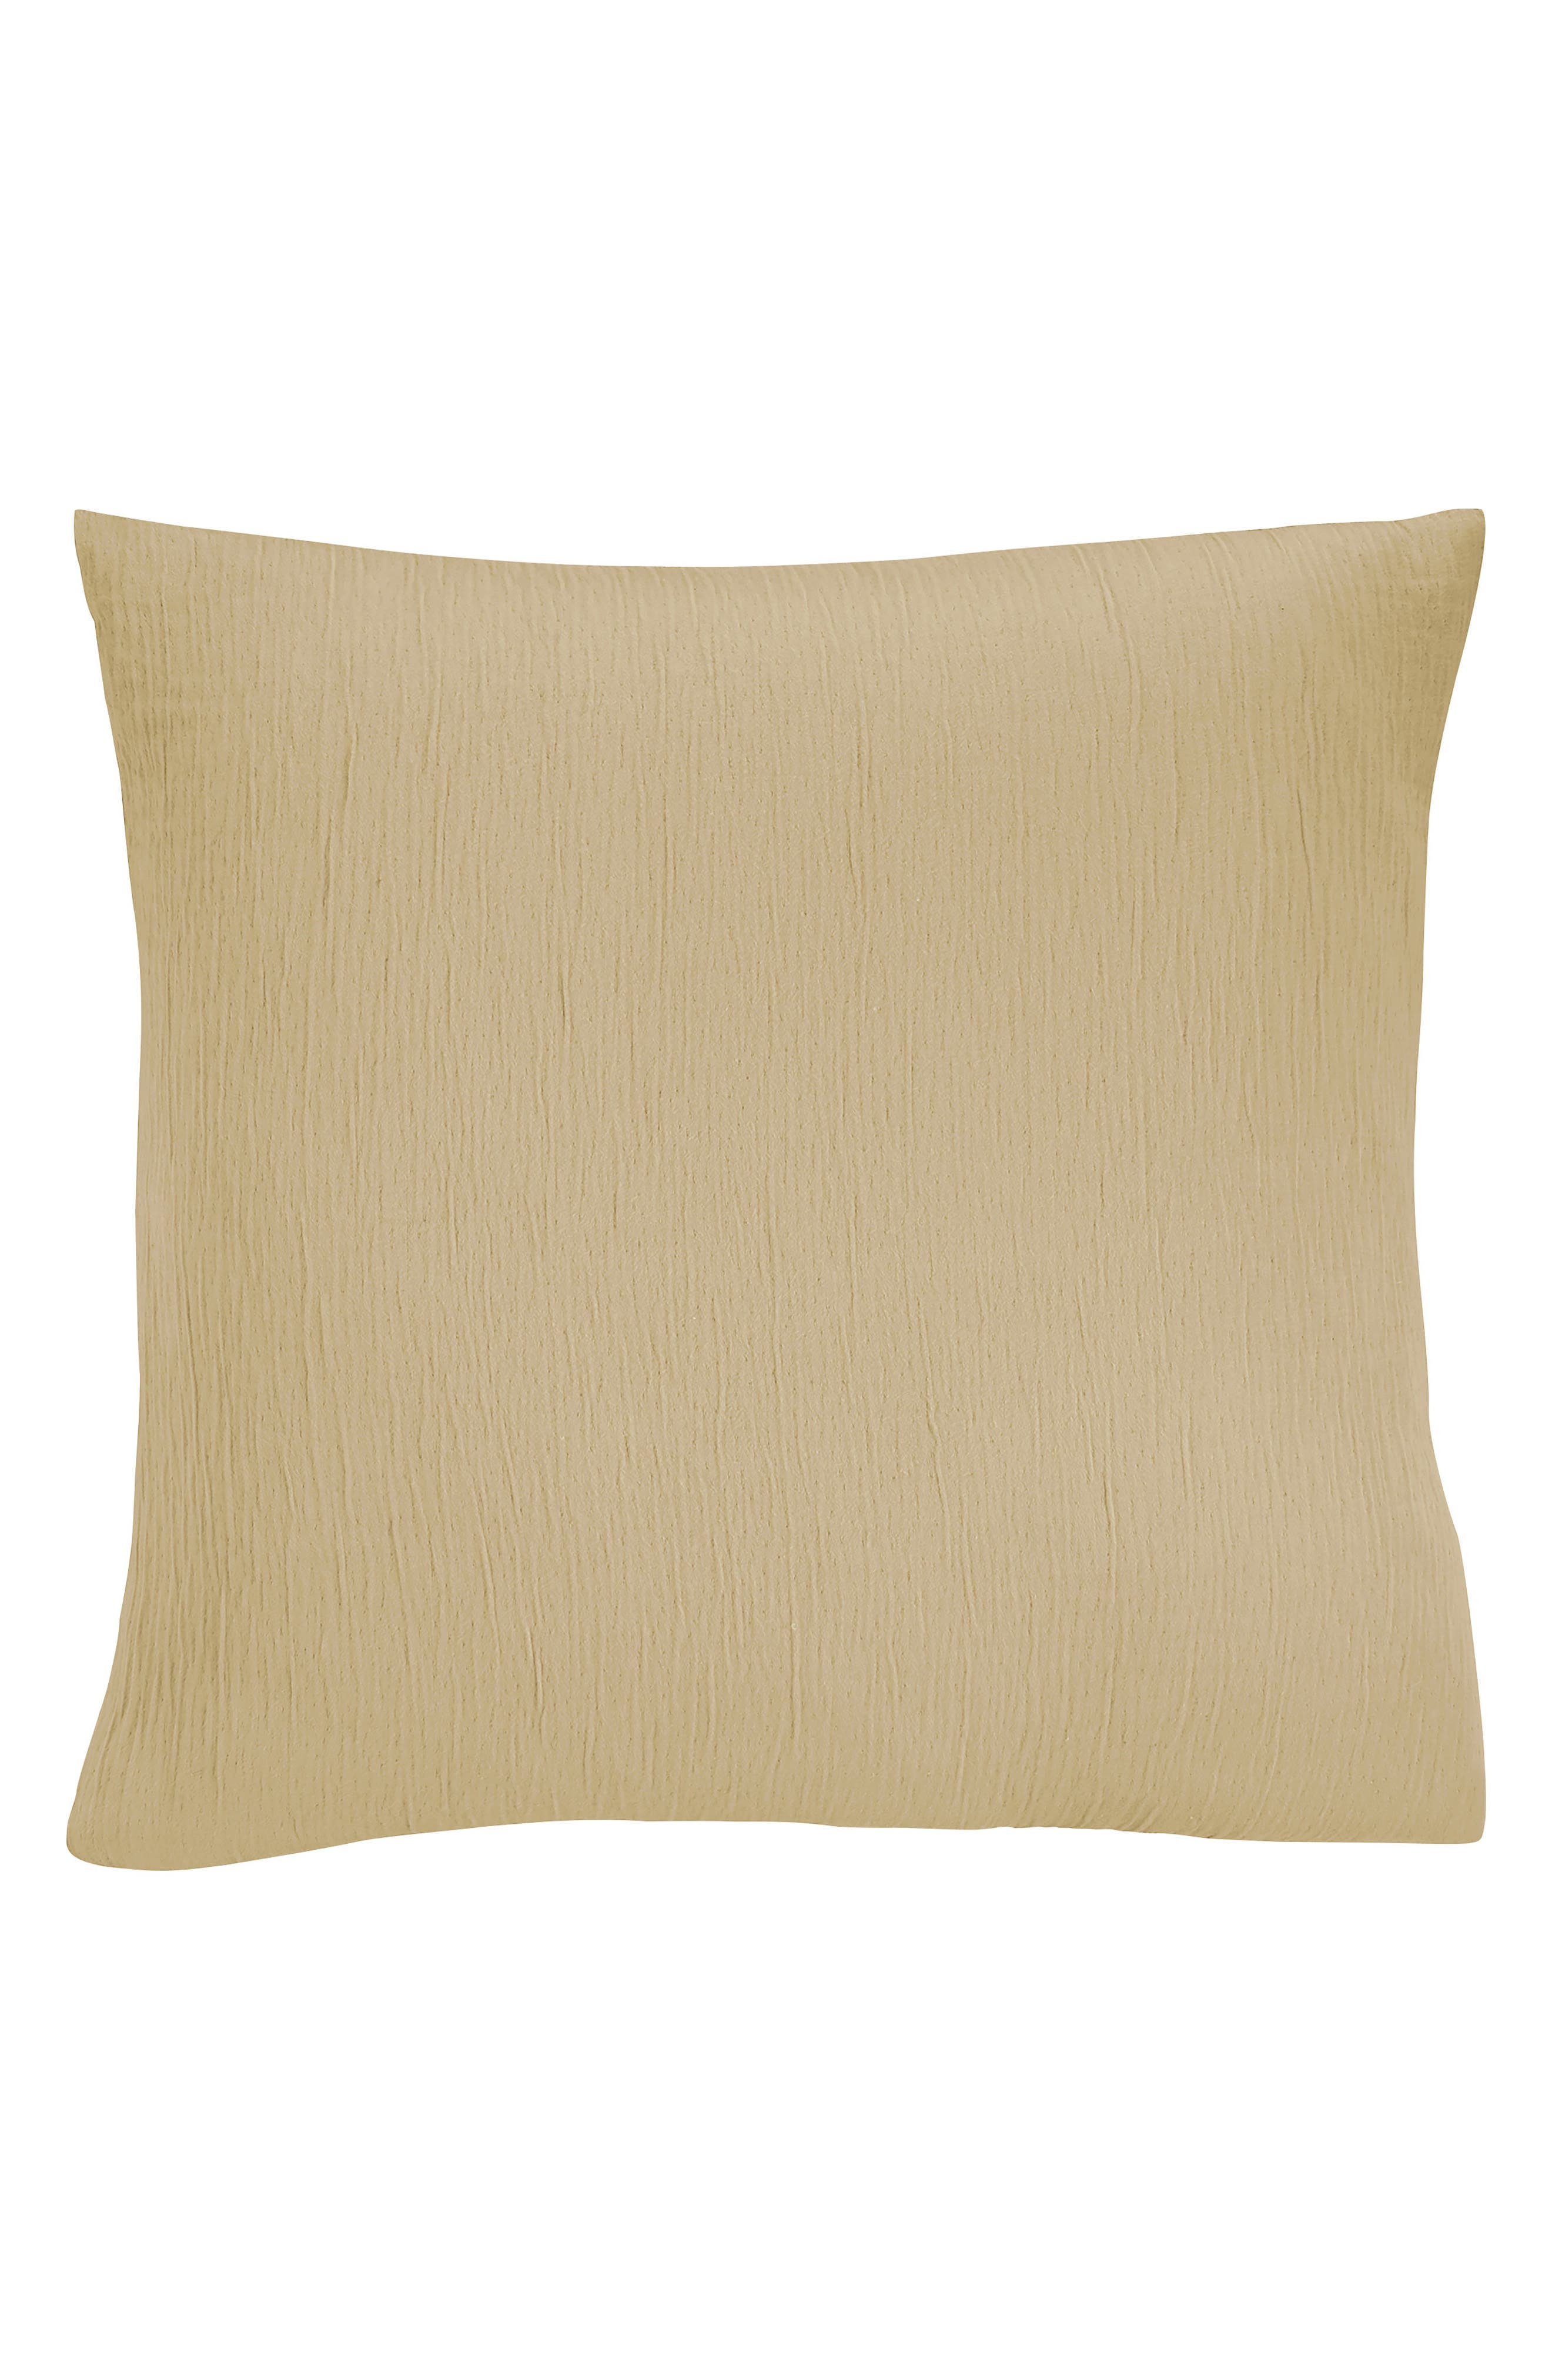 Donna Karan Casual Luxe Euro Sham,                         Main,                         color, Gold